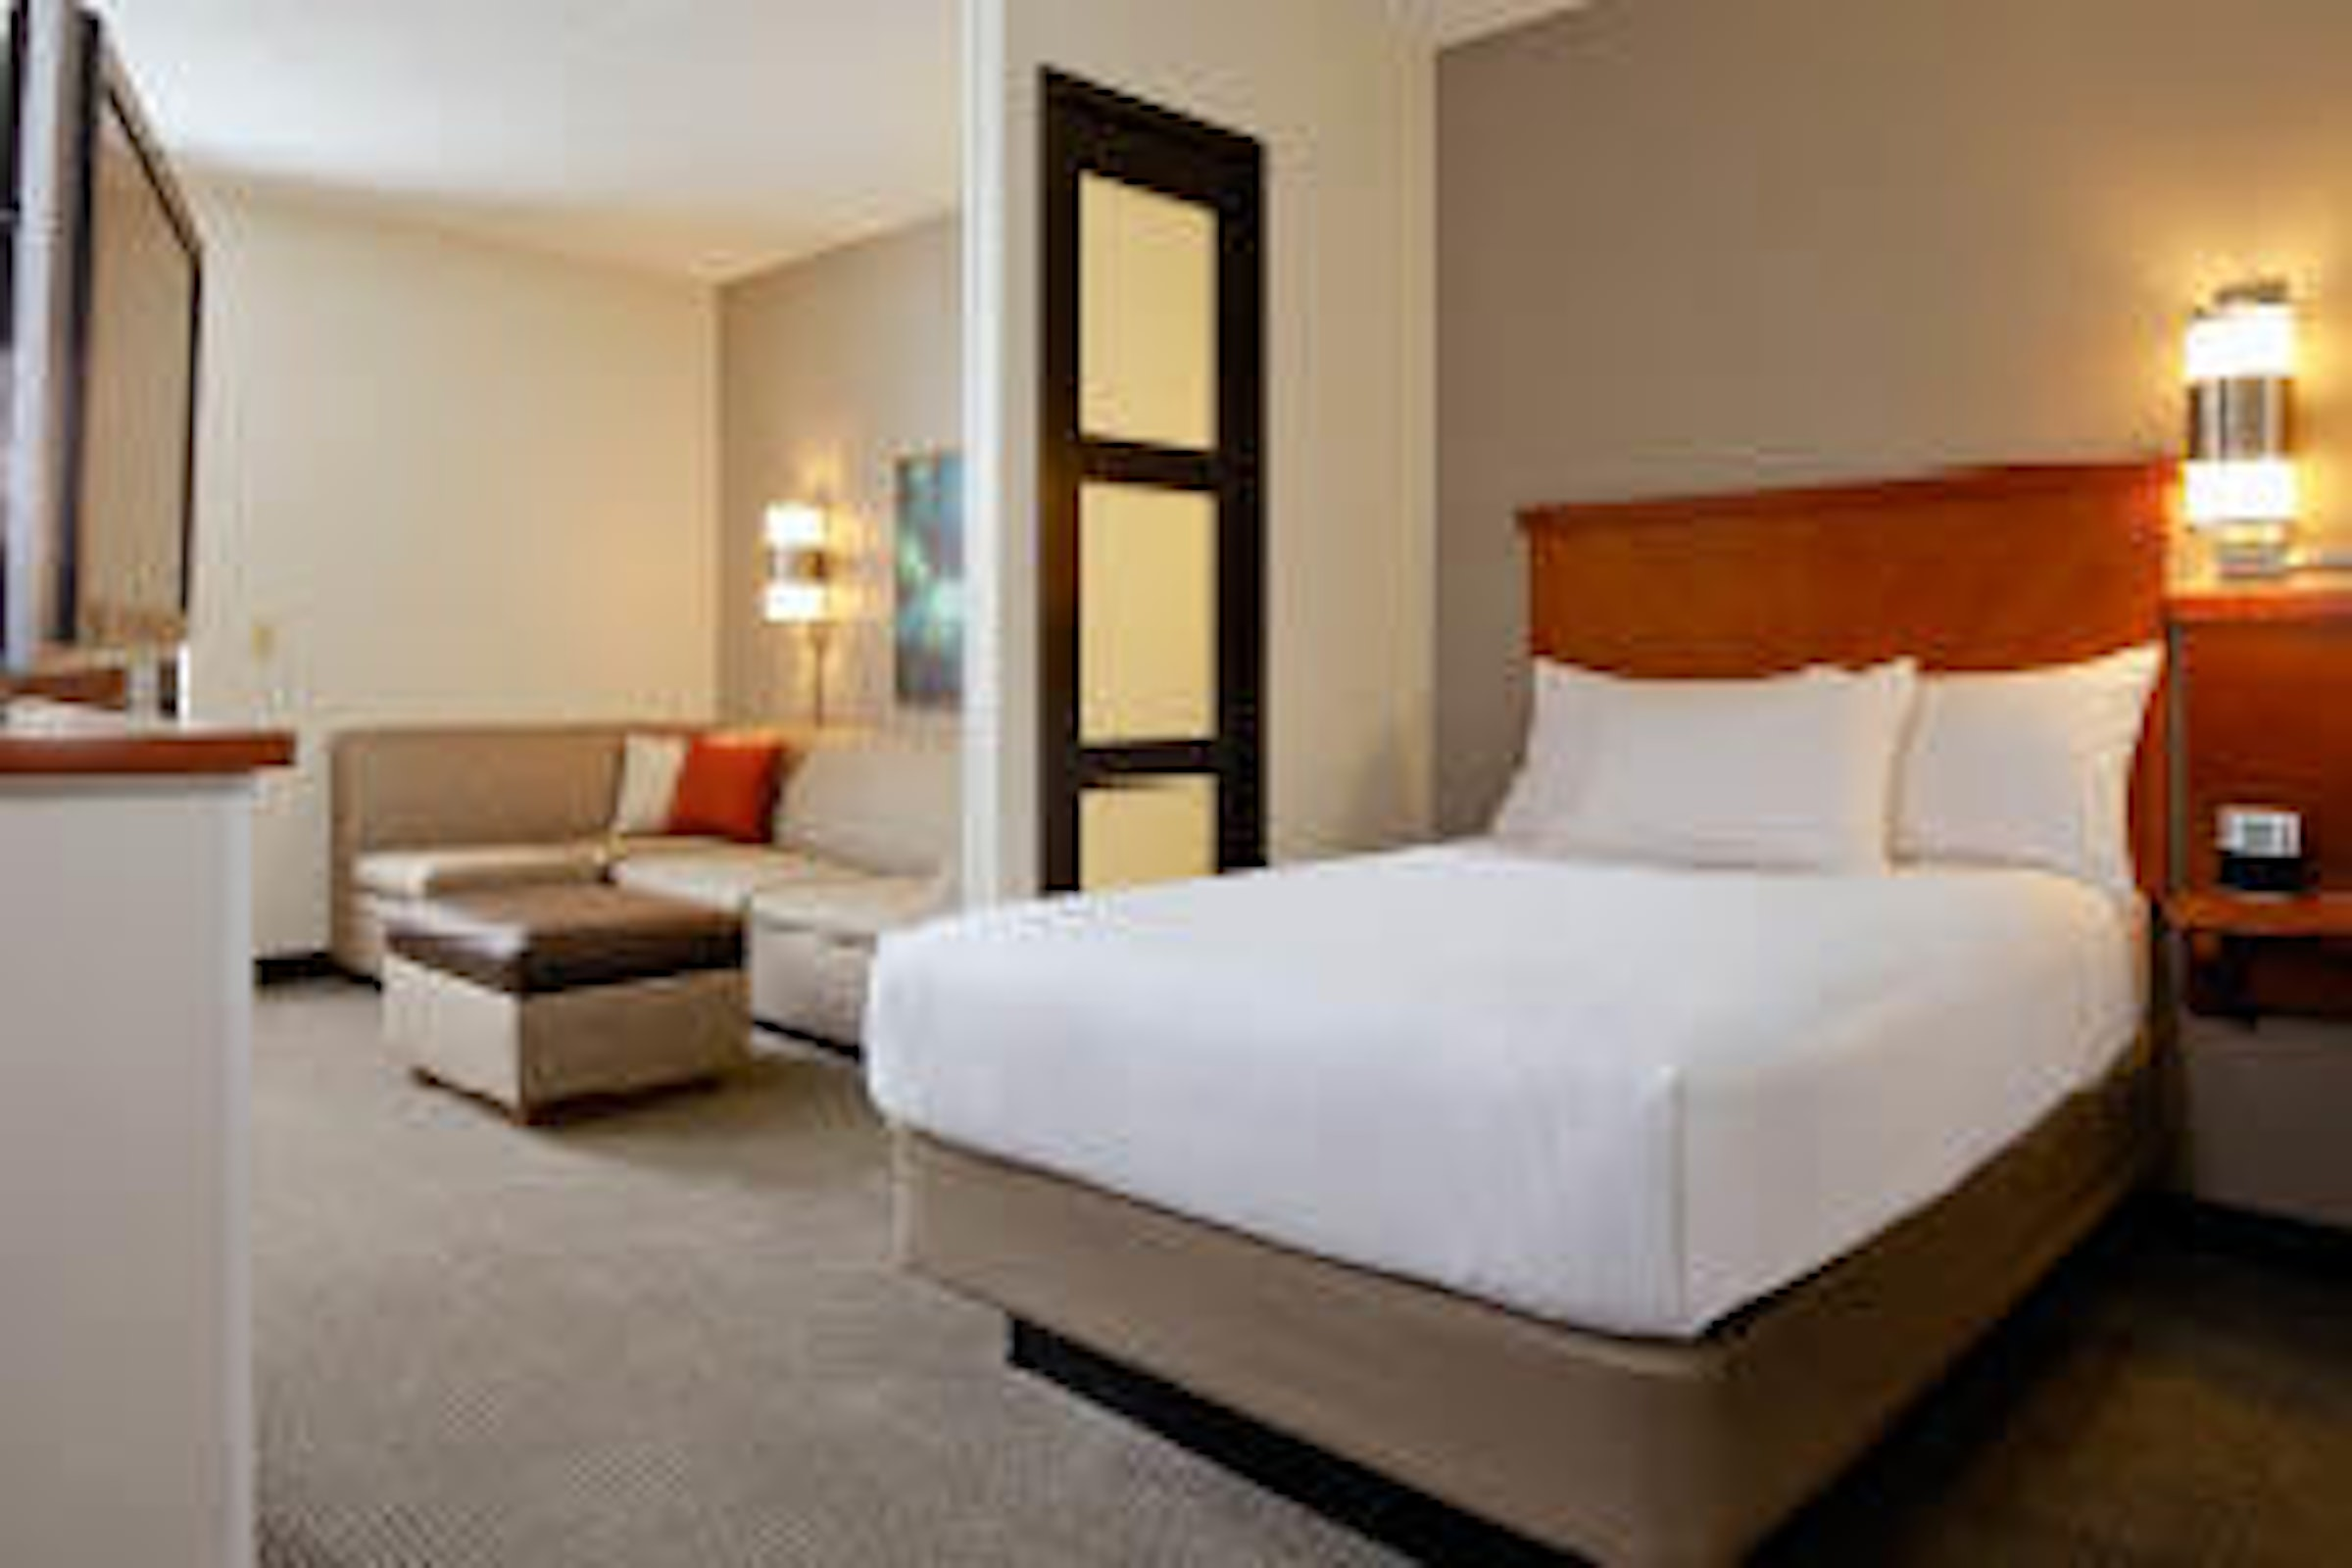 Hyatt Place Dallas North by the Galleria in Beyond Dallas